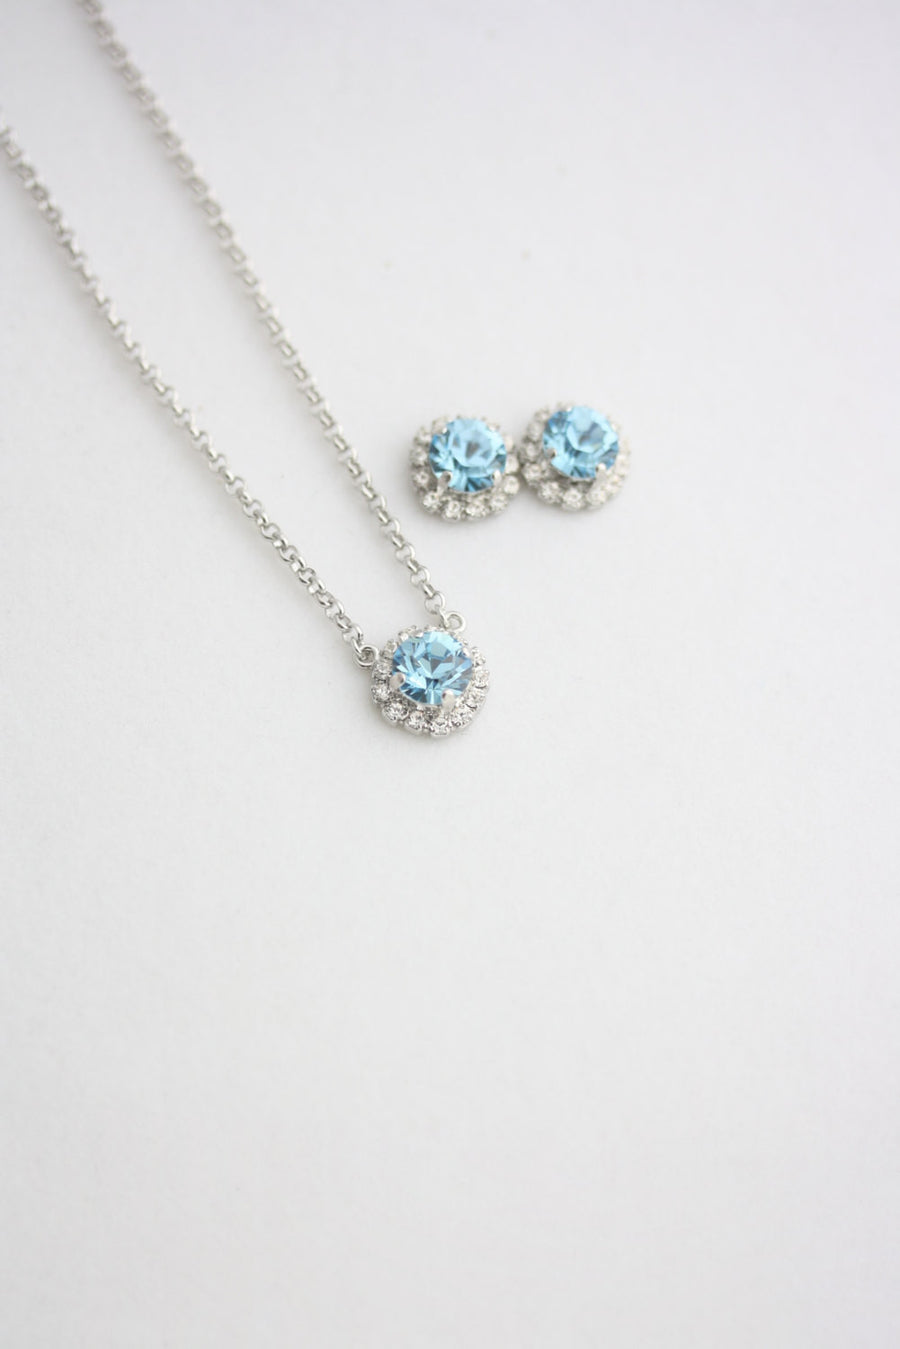 Z15 Halo Aquamarine Bridal Studs And Necklace